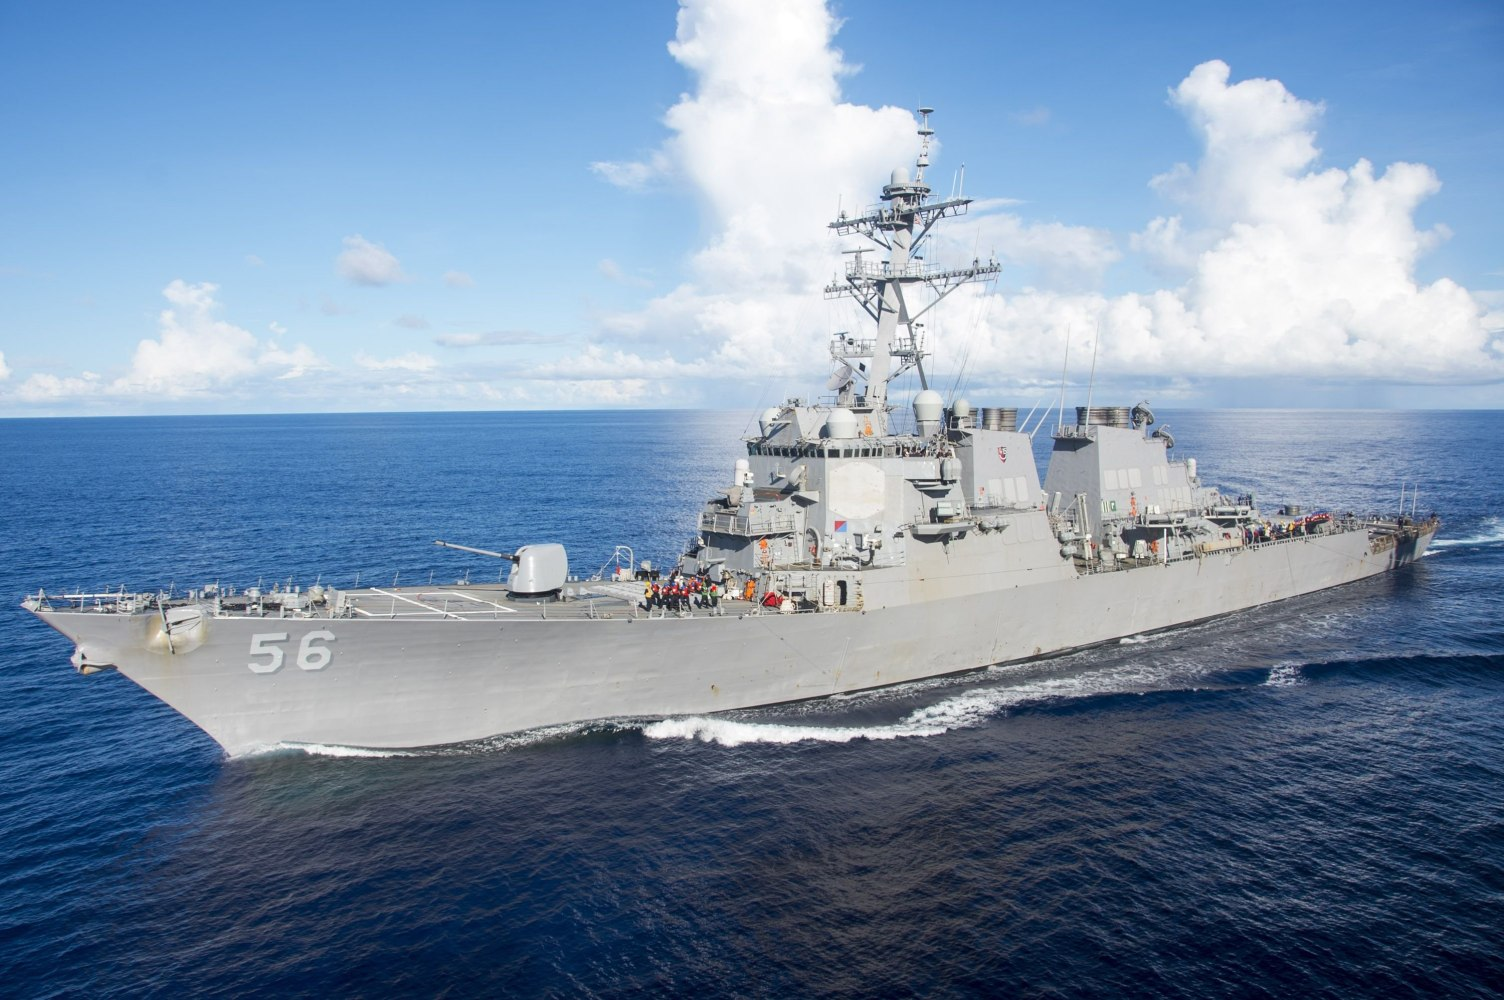 Senator tweets prayers for USS John S. McCain